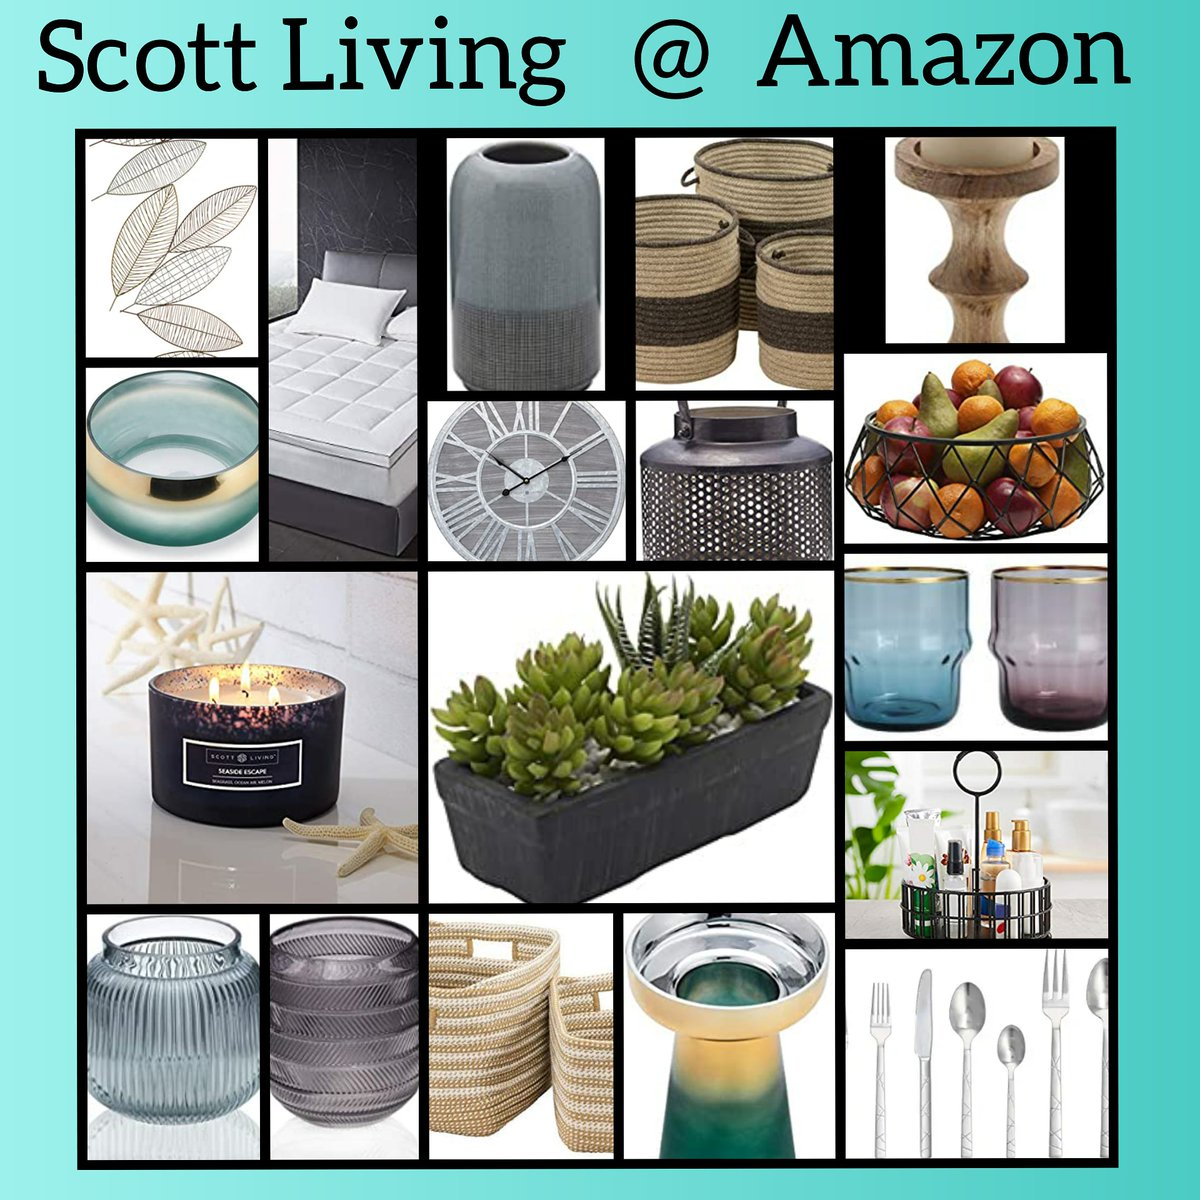 Shop here today for Quality Products at great prices #Saturday #SaturdayMorning #SaturdayKitchen #SaturdayMotivation #amazing #businessowner #goodmorning #Twitter #instagood #instadaily #Trending